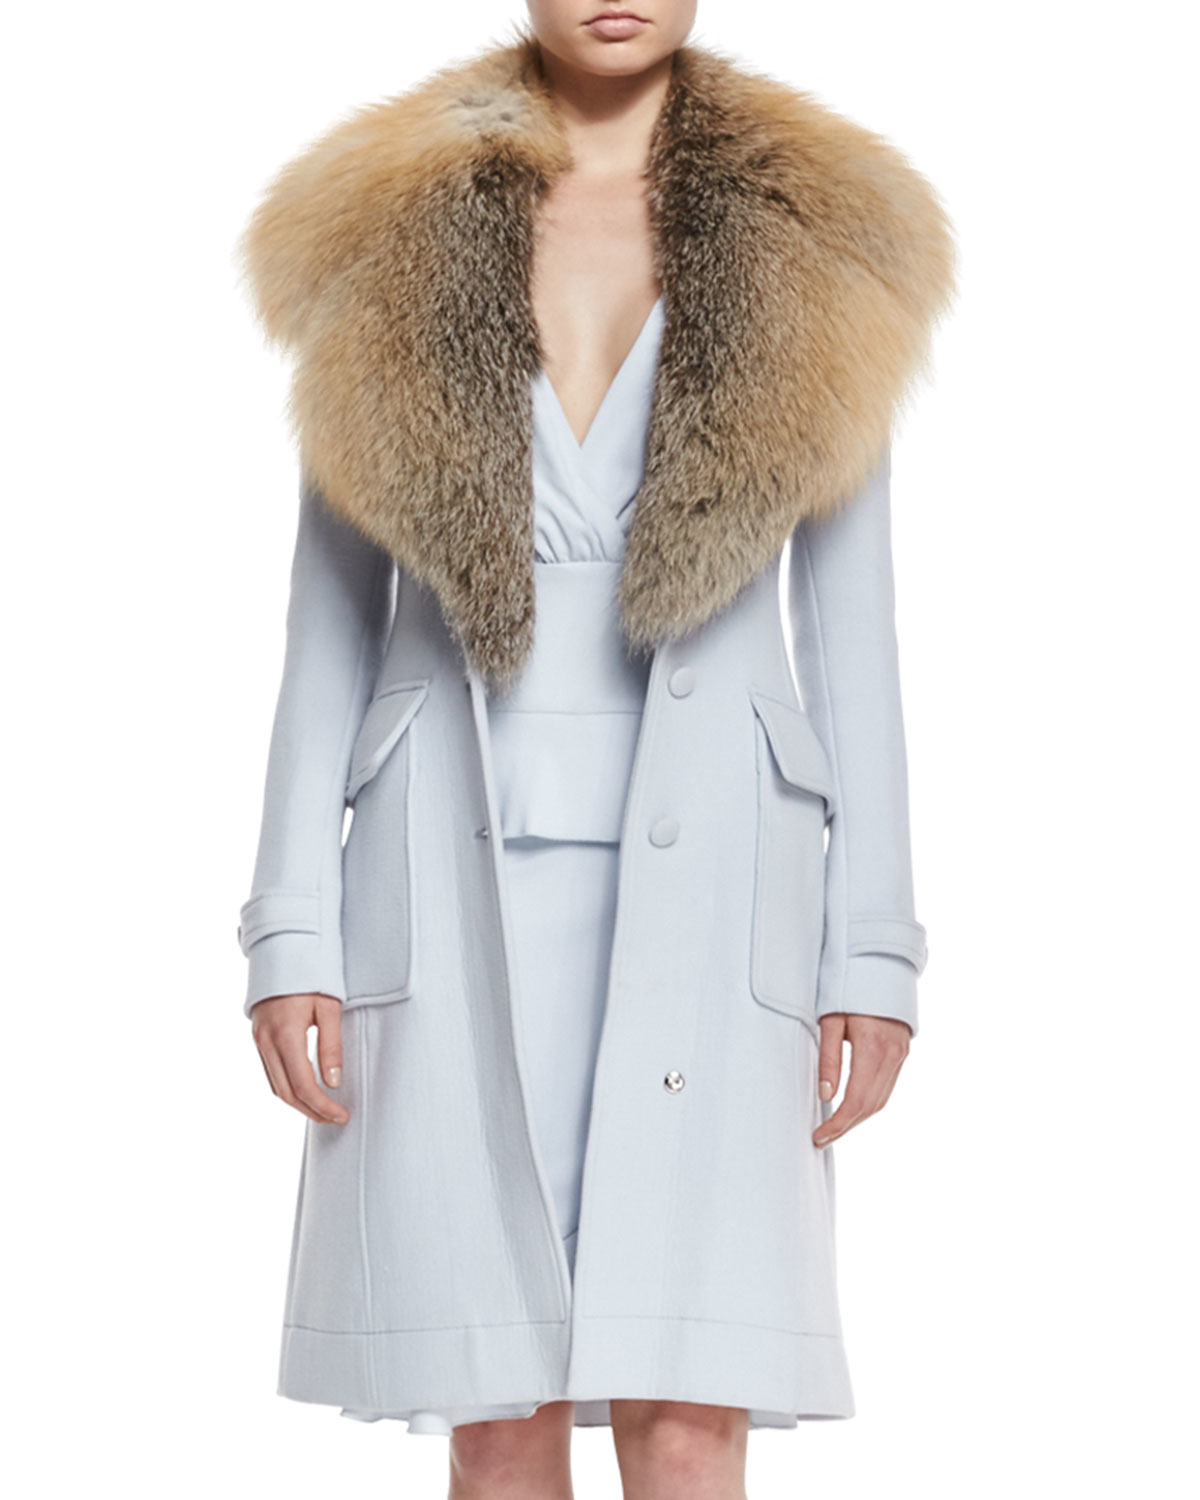 closer at undefeated x detailed images Altuzarra Fox-fur Collar Wool-blend Coat in Blue - Lyst